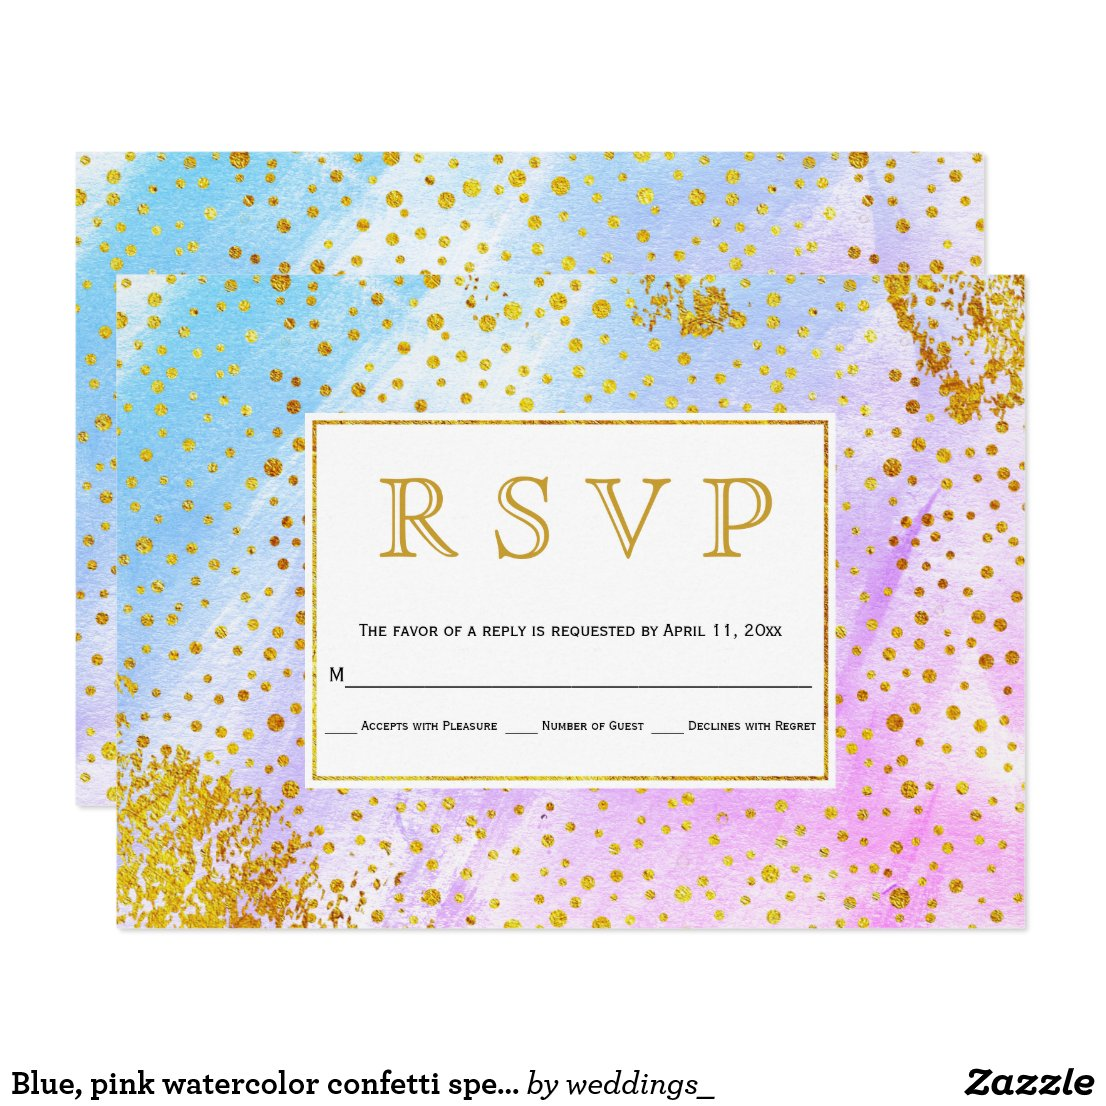 Blue, pink watercolor confetti specks wedding RSVP